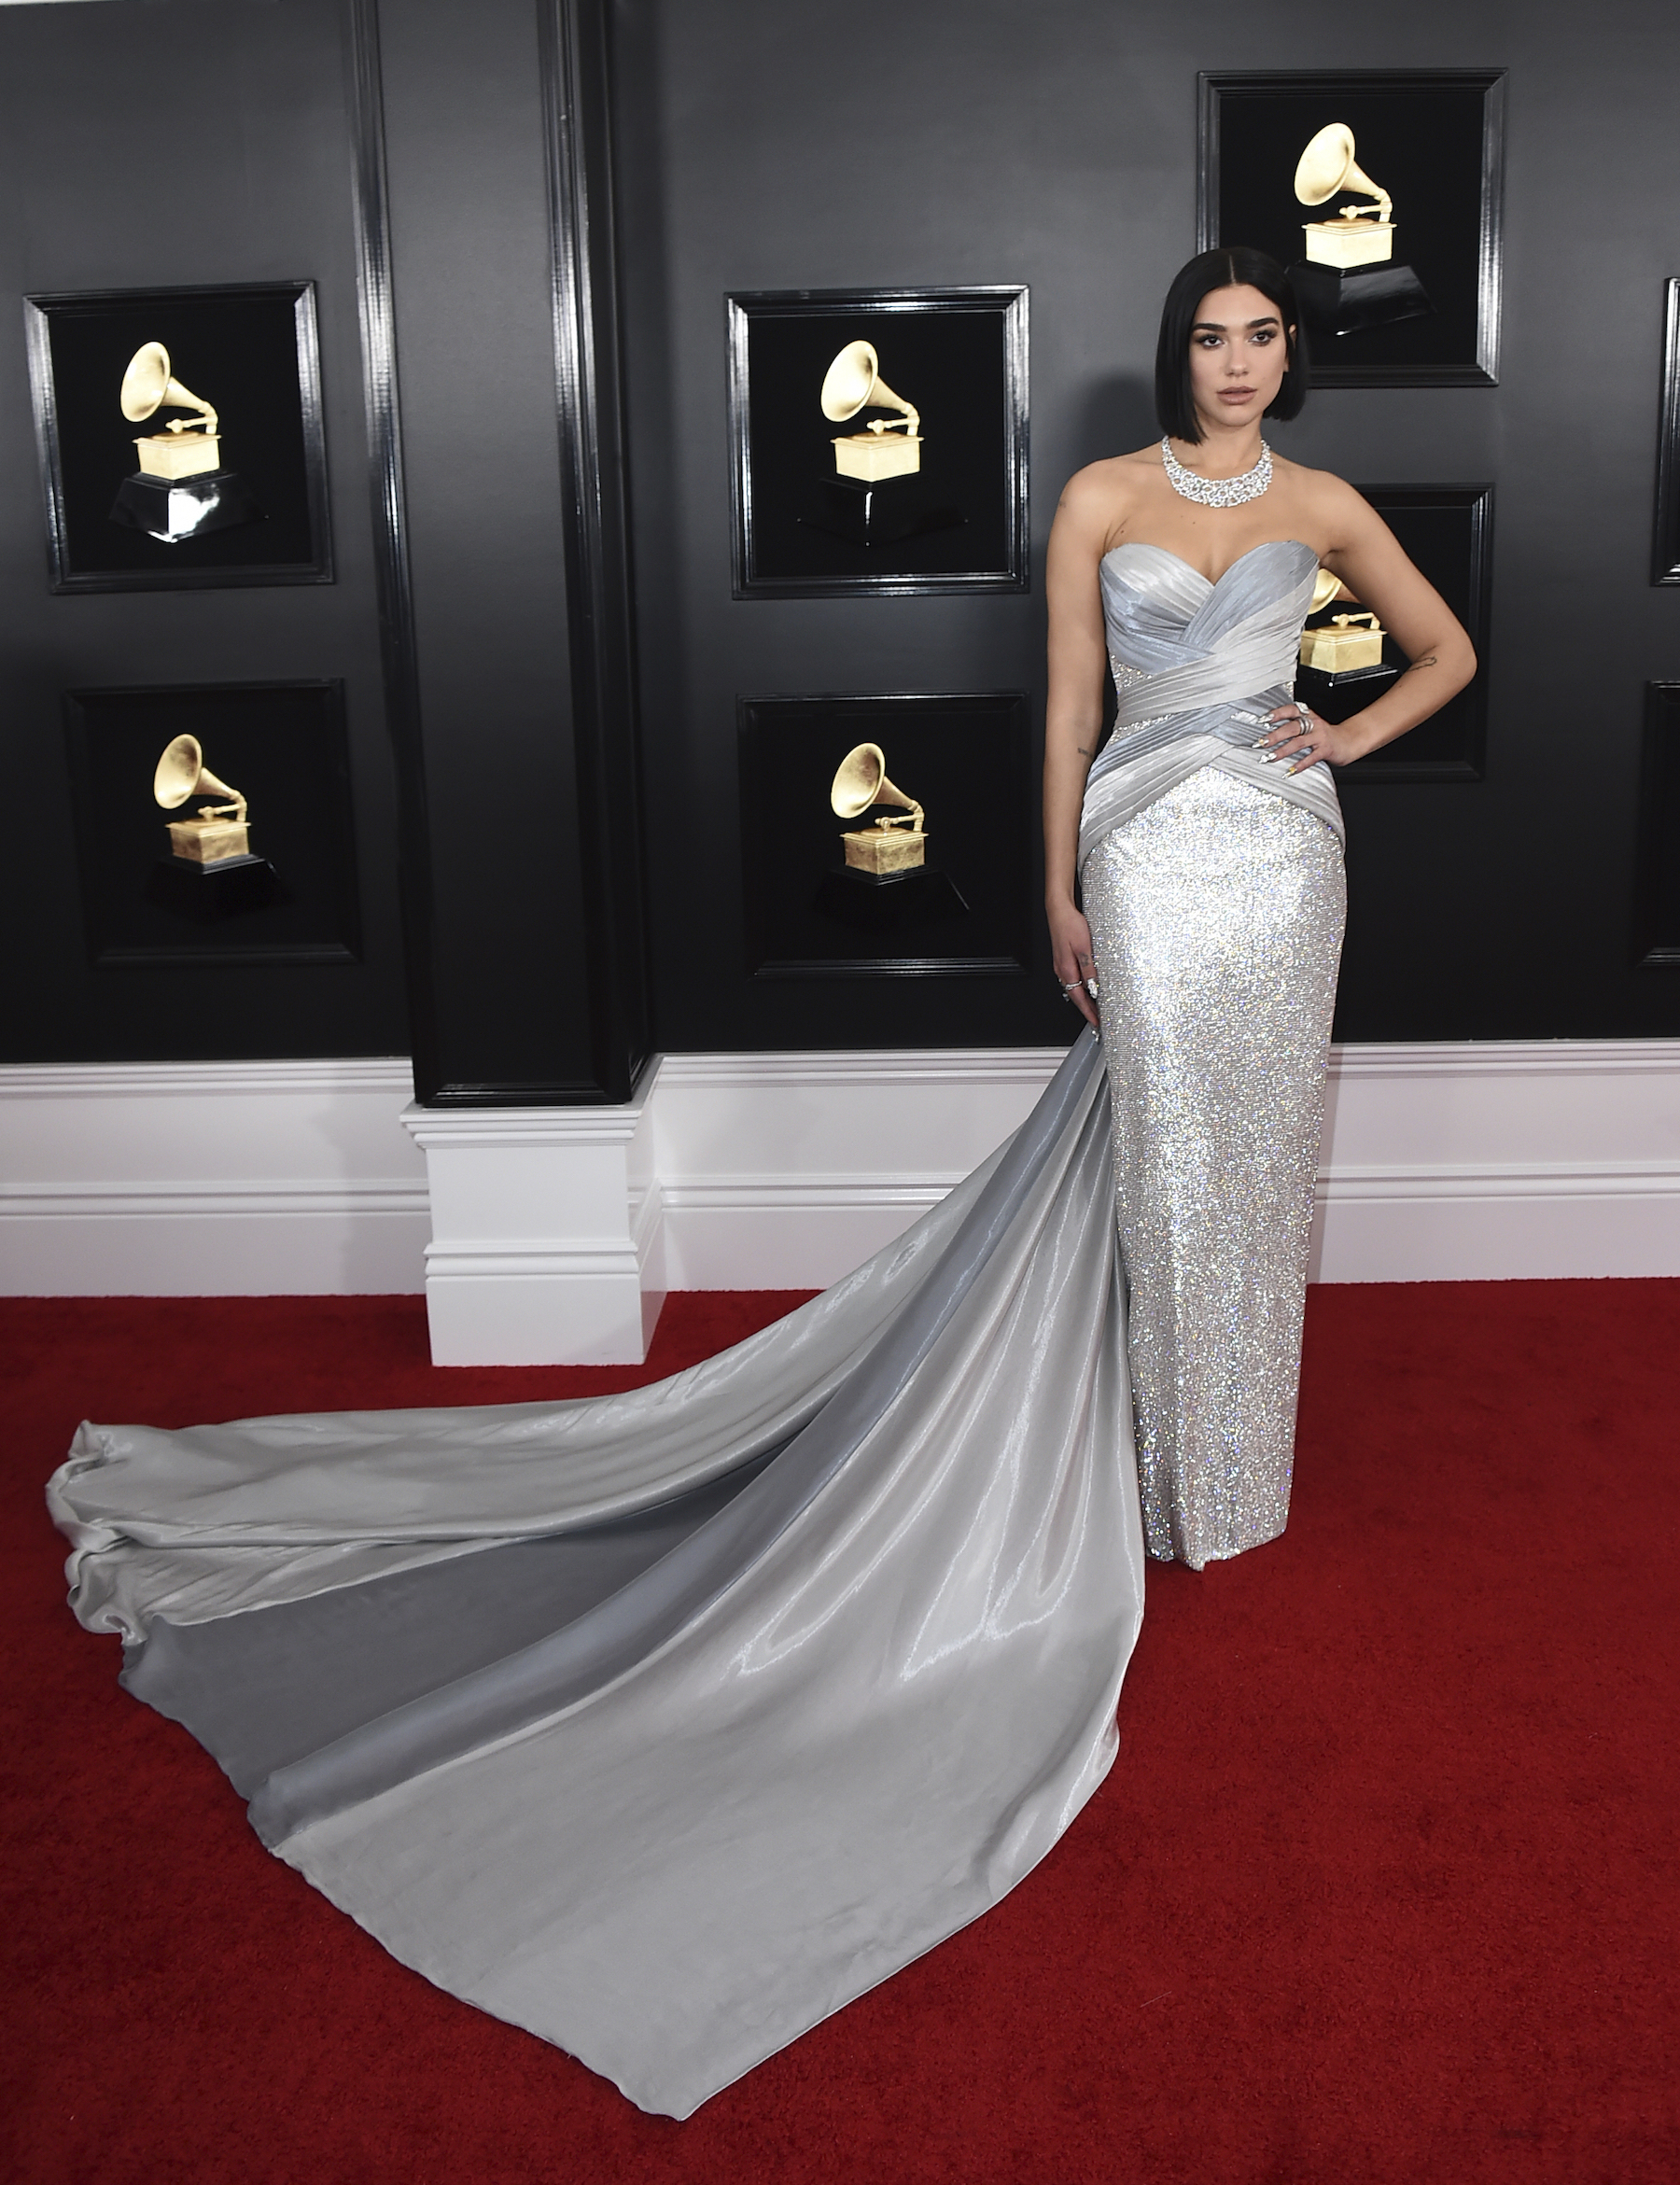 <div class='meta'><div class='origin-logo' data-origin='AP'></div><span class='caption-text' data-credit='Jordan Strauss/Invision/AP'>Dua Lipa arrives at the 61st annual Grammy Awards at the Staples Center on Sunday, Feb. 10, 2019, in Los Angeles.</span></div>